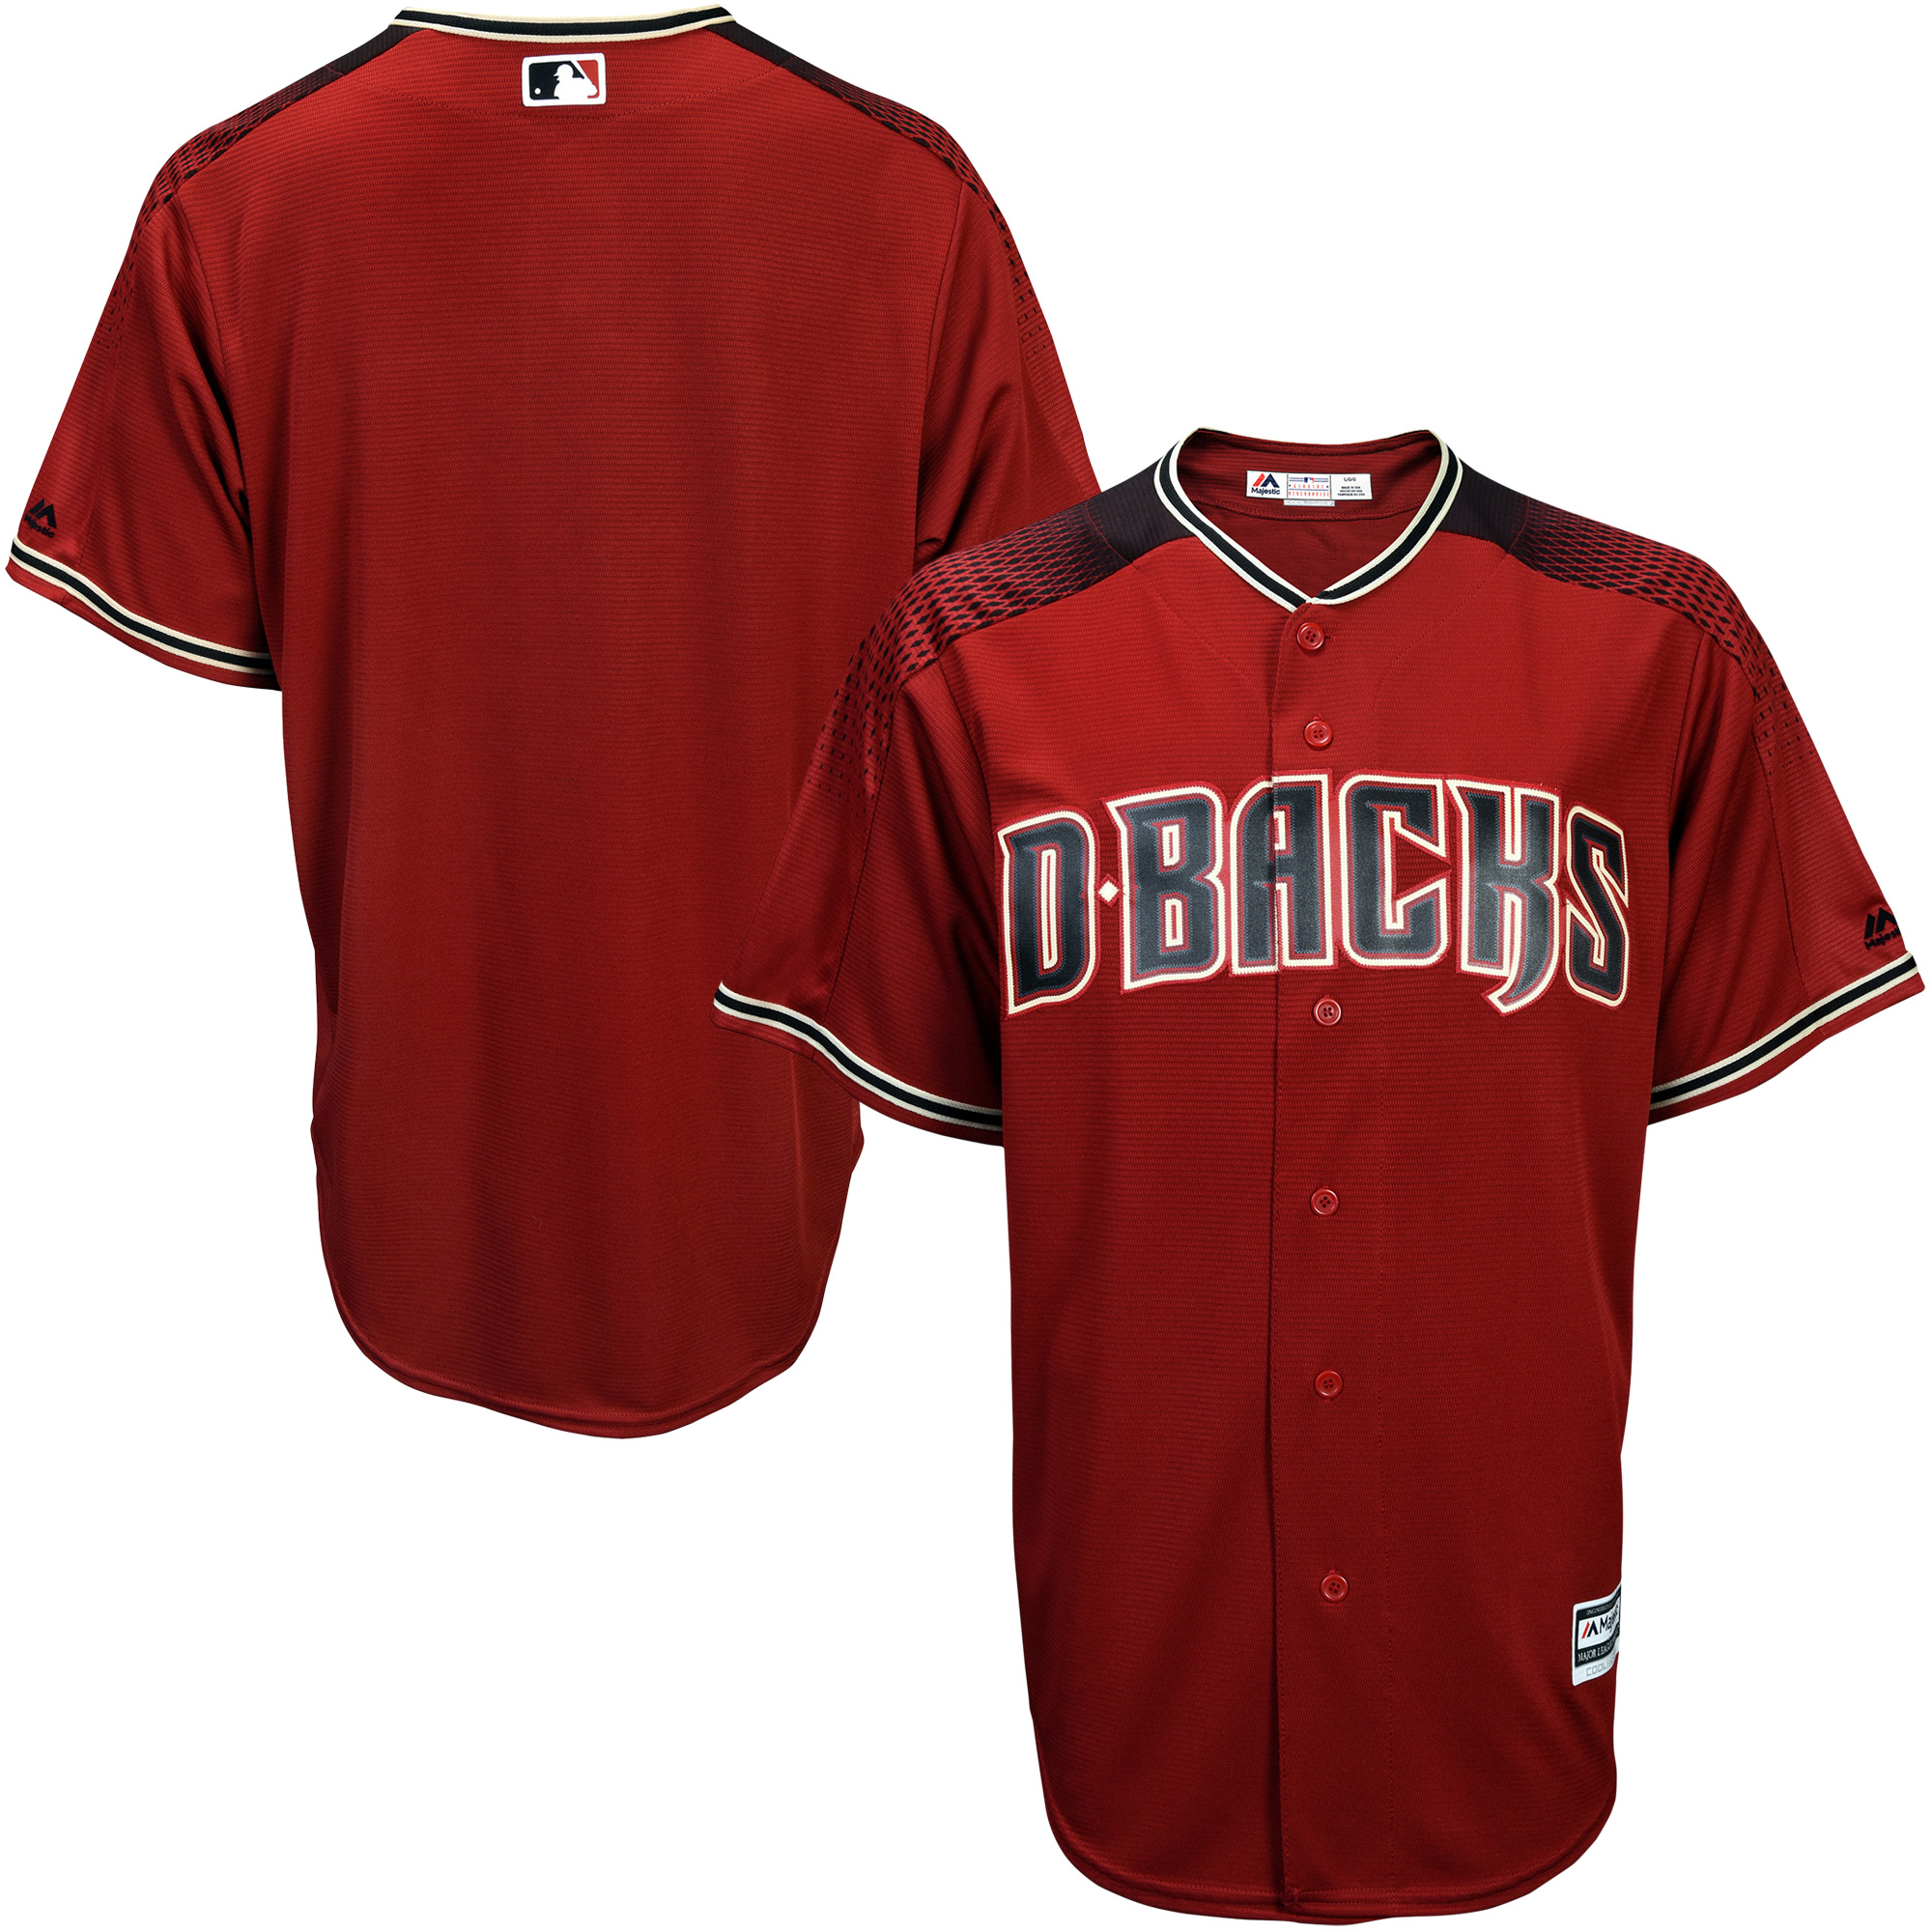 Arizona Diamondbacks Majestic Alternate Youth Offical Cool Base Jersey - Sedona Red